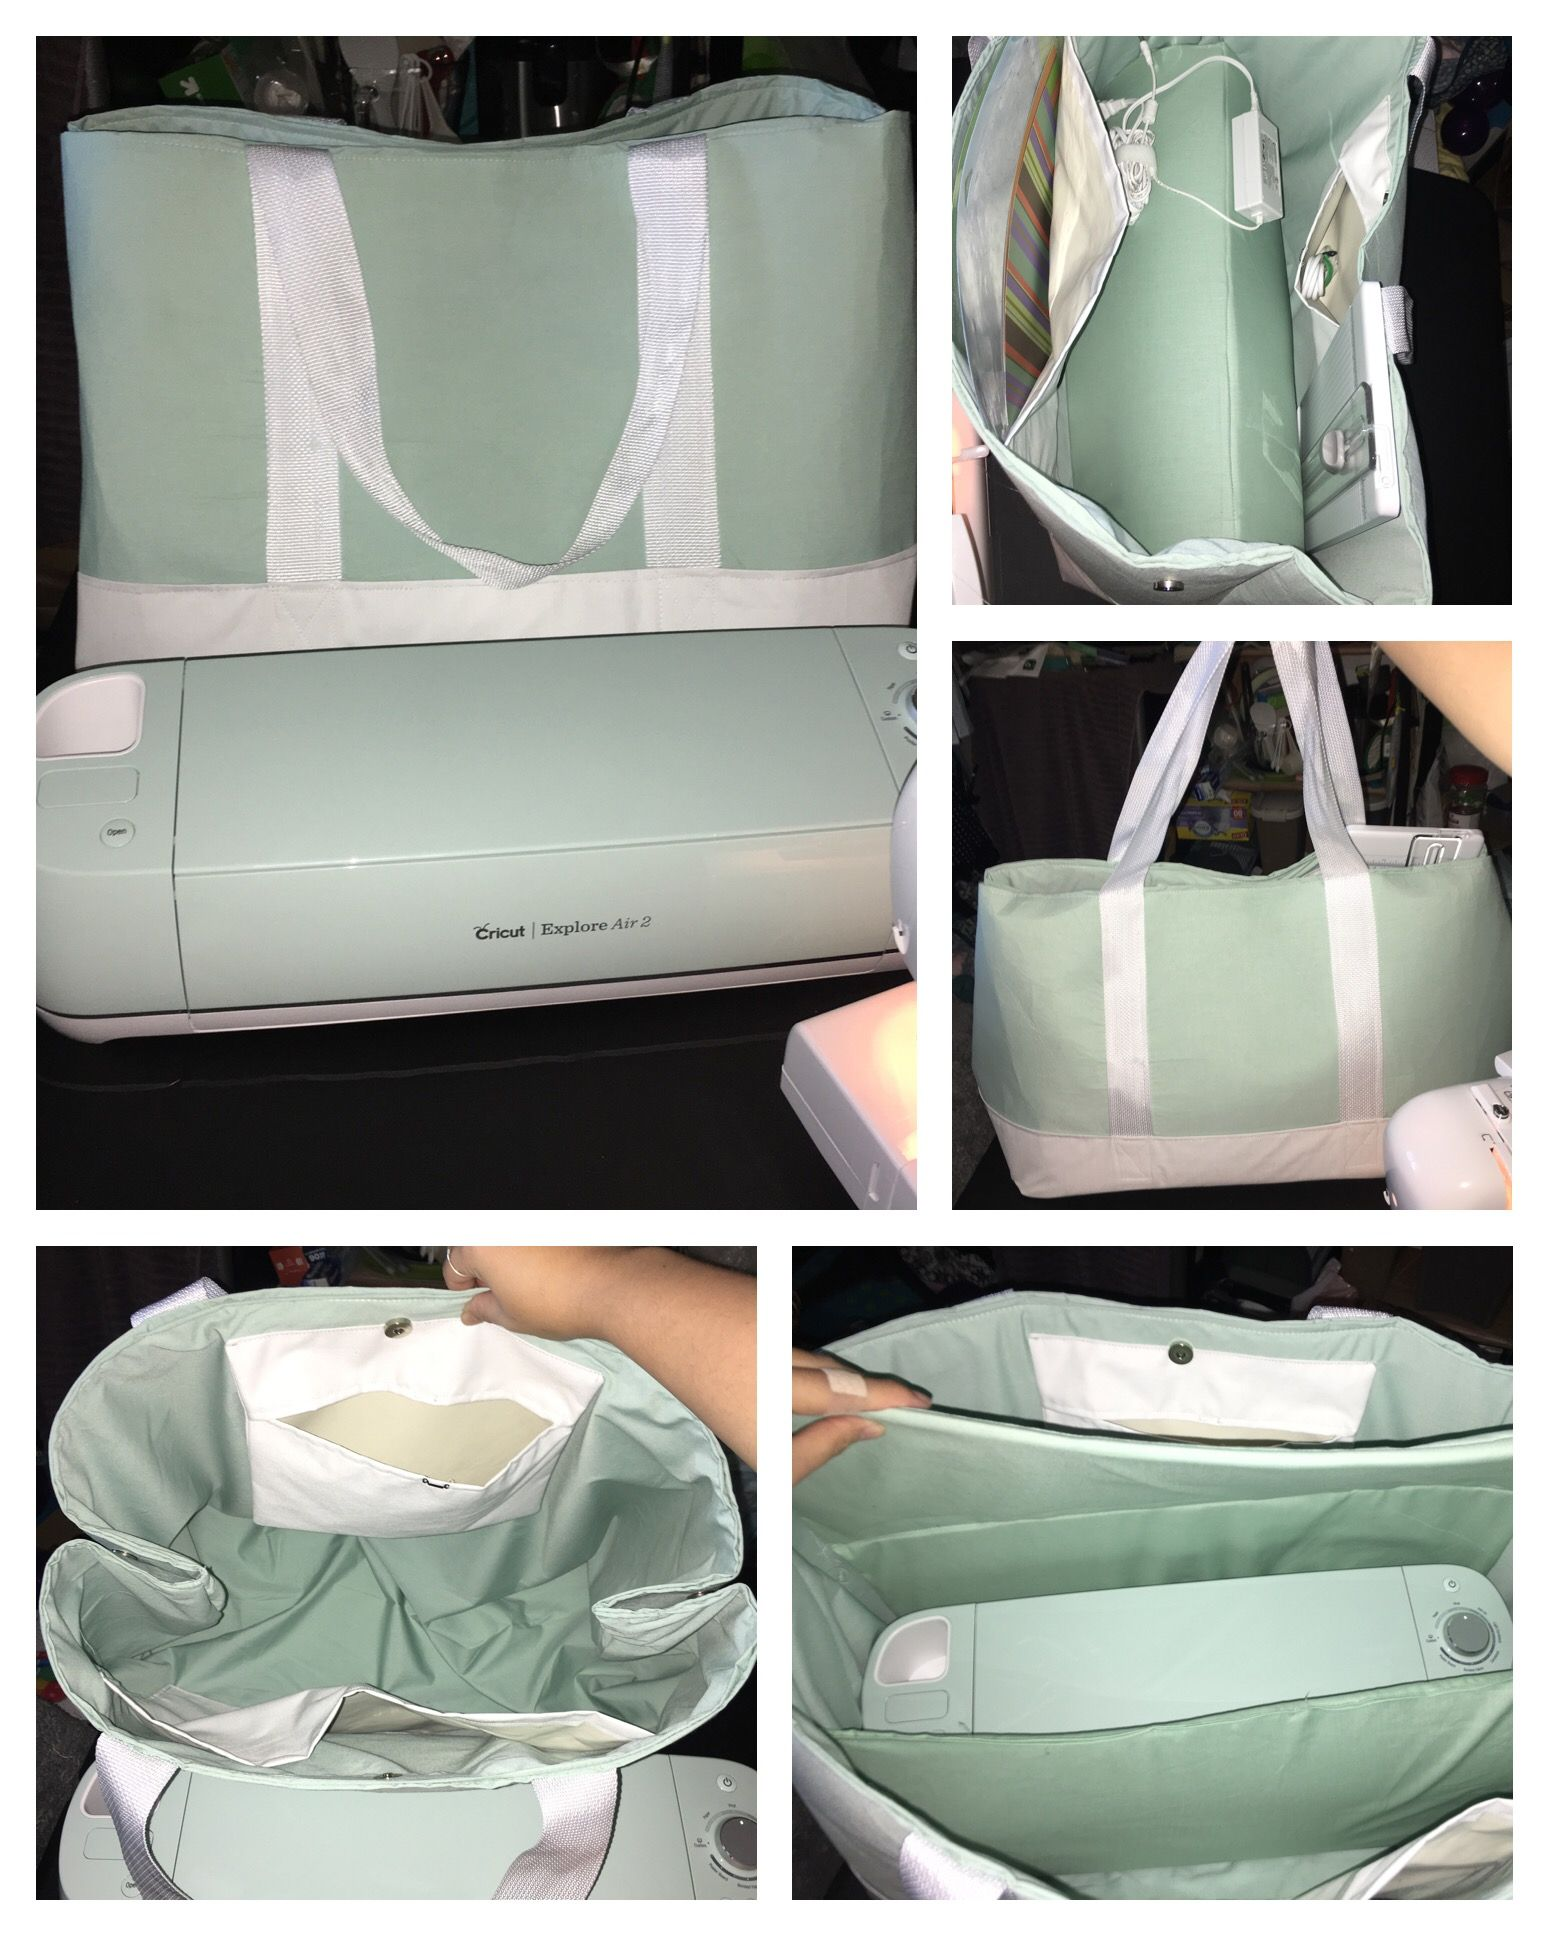 c8288529eac9 Cricut explore air 2 MATCHING TOTE BAG CARRYING CASE! My initial design was  too big and floppy so I reworked it so that it s just right.